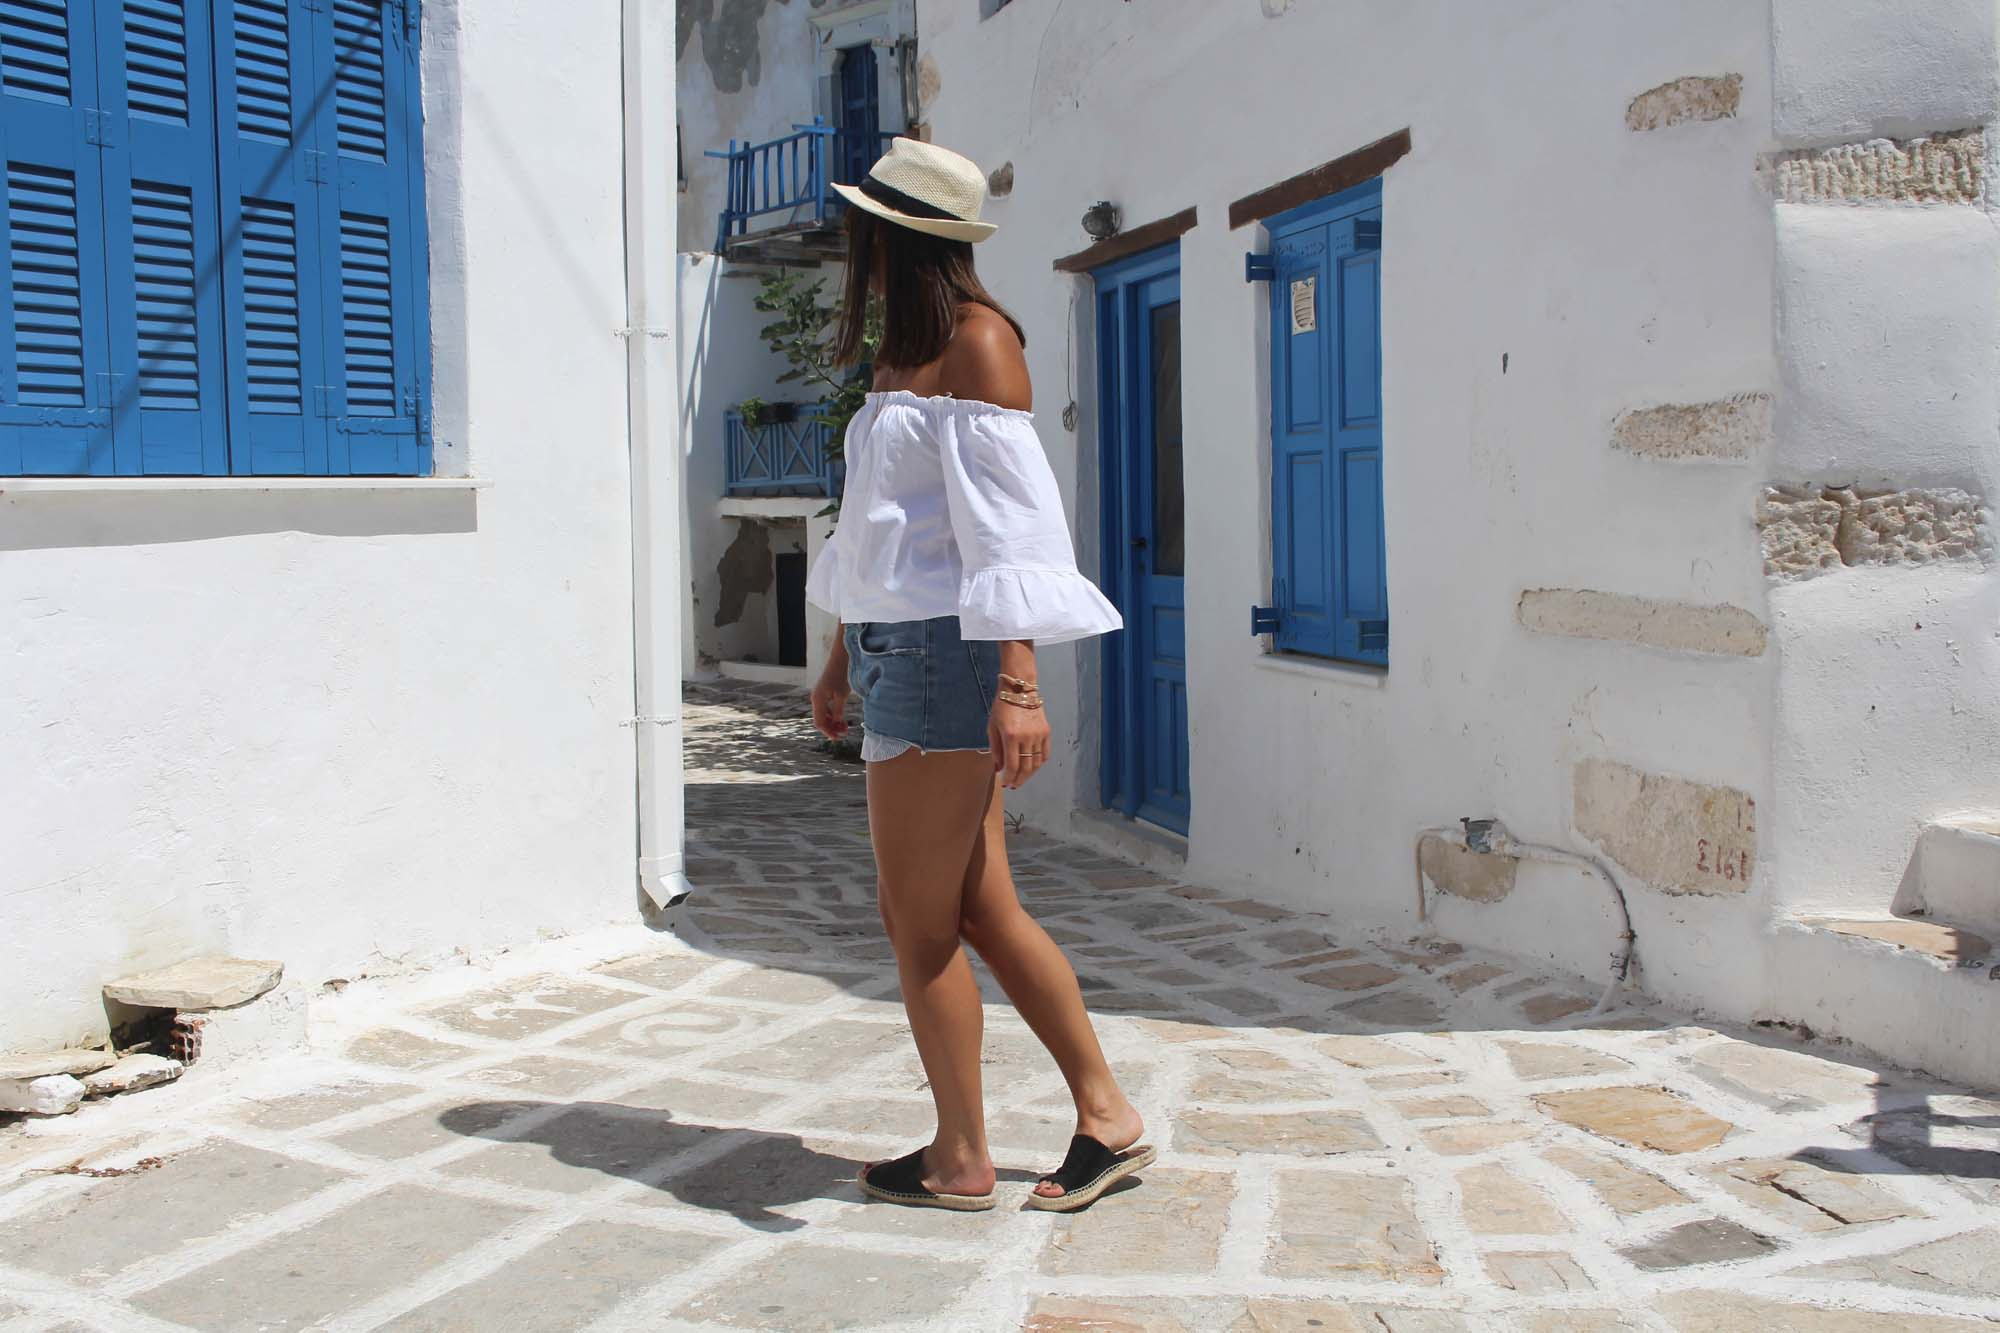 look-greece-paros-linstantflo-5-sur-16